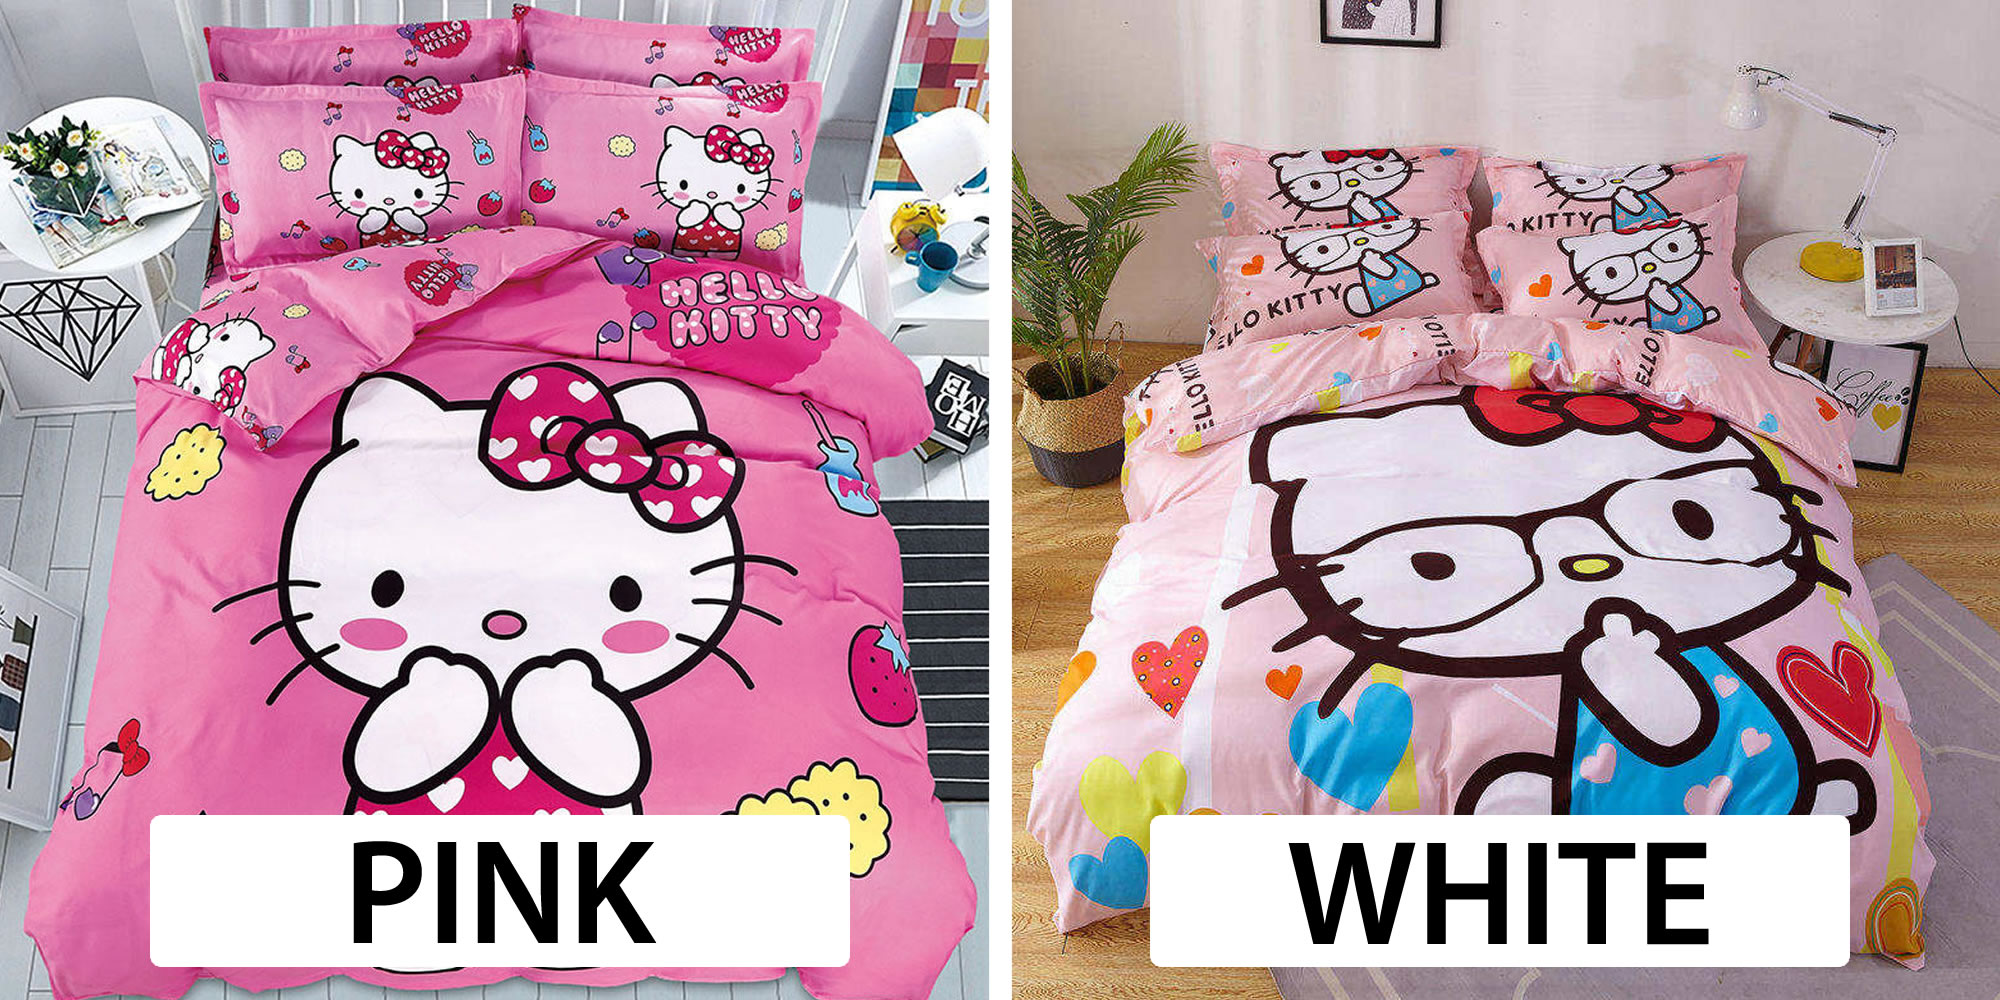 where to buy hello kitty bed linen online